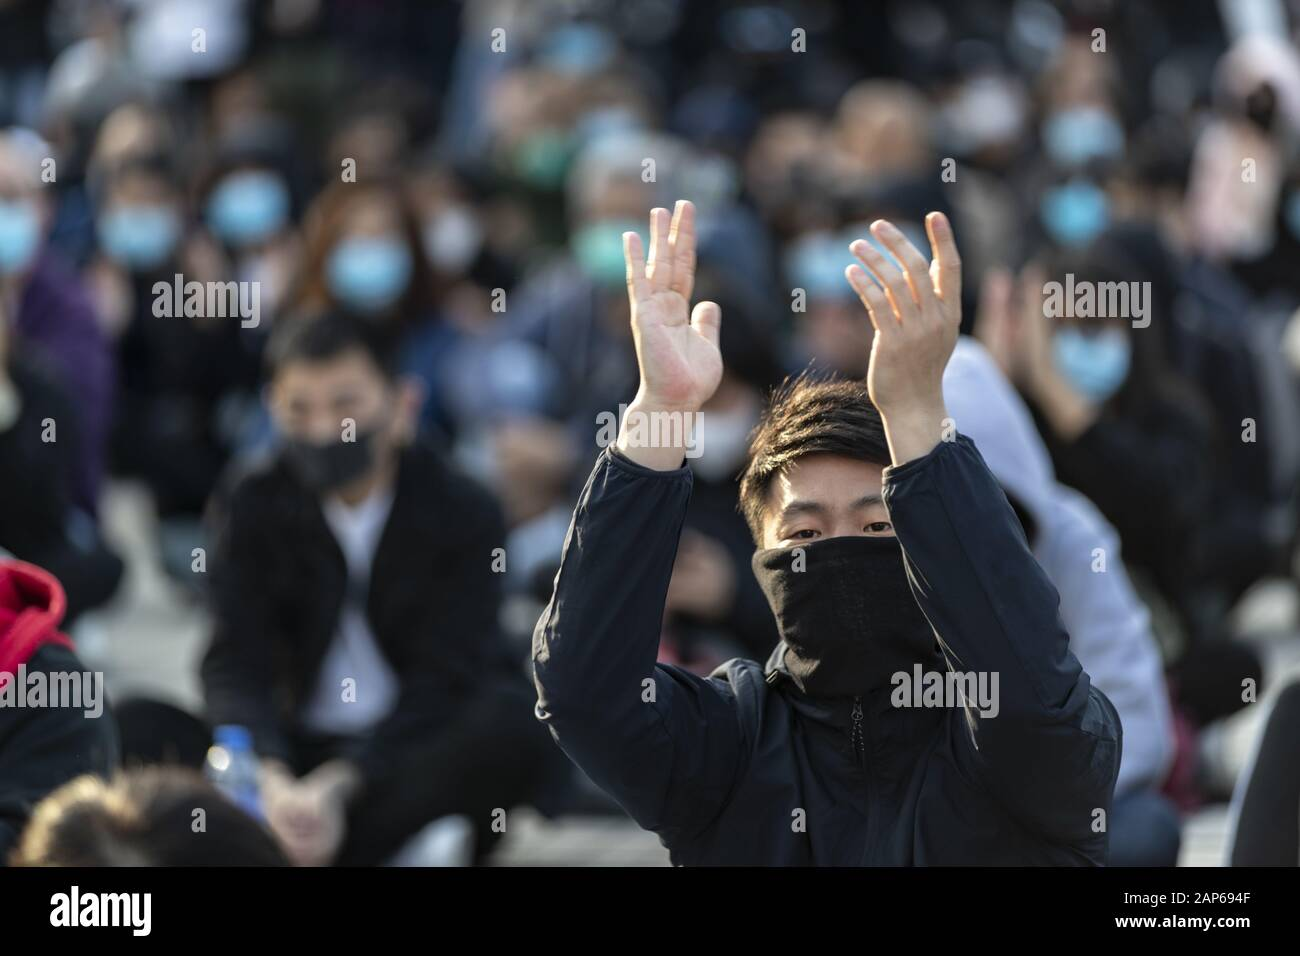 Hong Kong, China. 12th Jan, 2020. Pro-democracy demonstrator applauding the speakers during the assembly.The Hong Kong Civil Assembly Team organised a Sunday Assembly to make awareness and promote their coming march on Sunday January 19th, 2020 for Universal Siege on Communists. Credit: May James/SOPA Images/ZUMA Wire/Alamy Live News Stock Photo